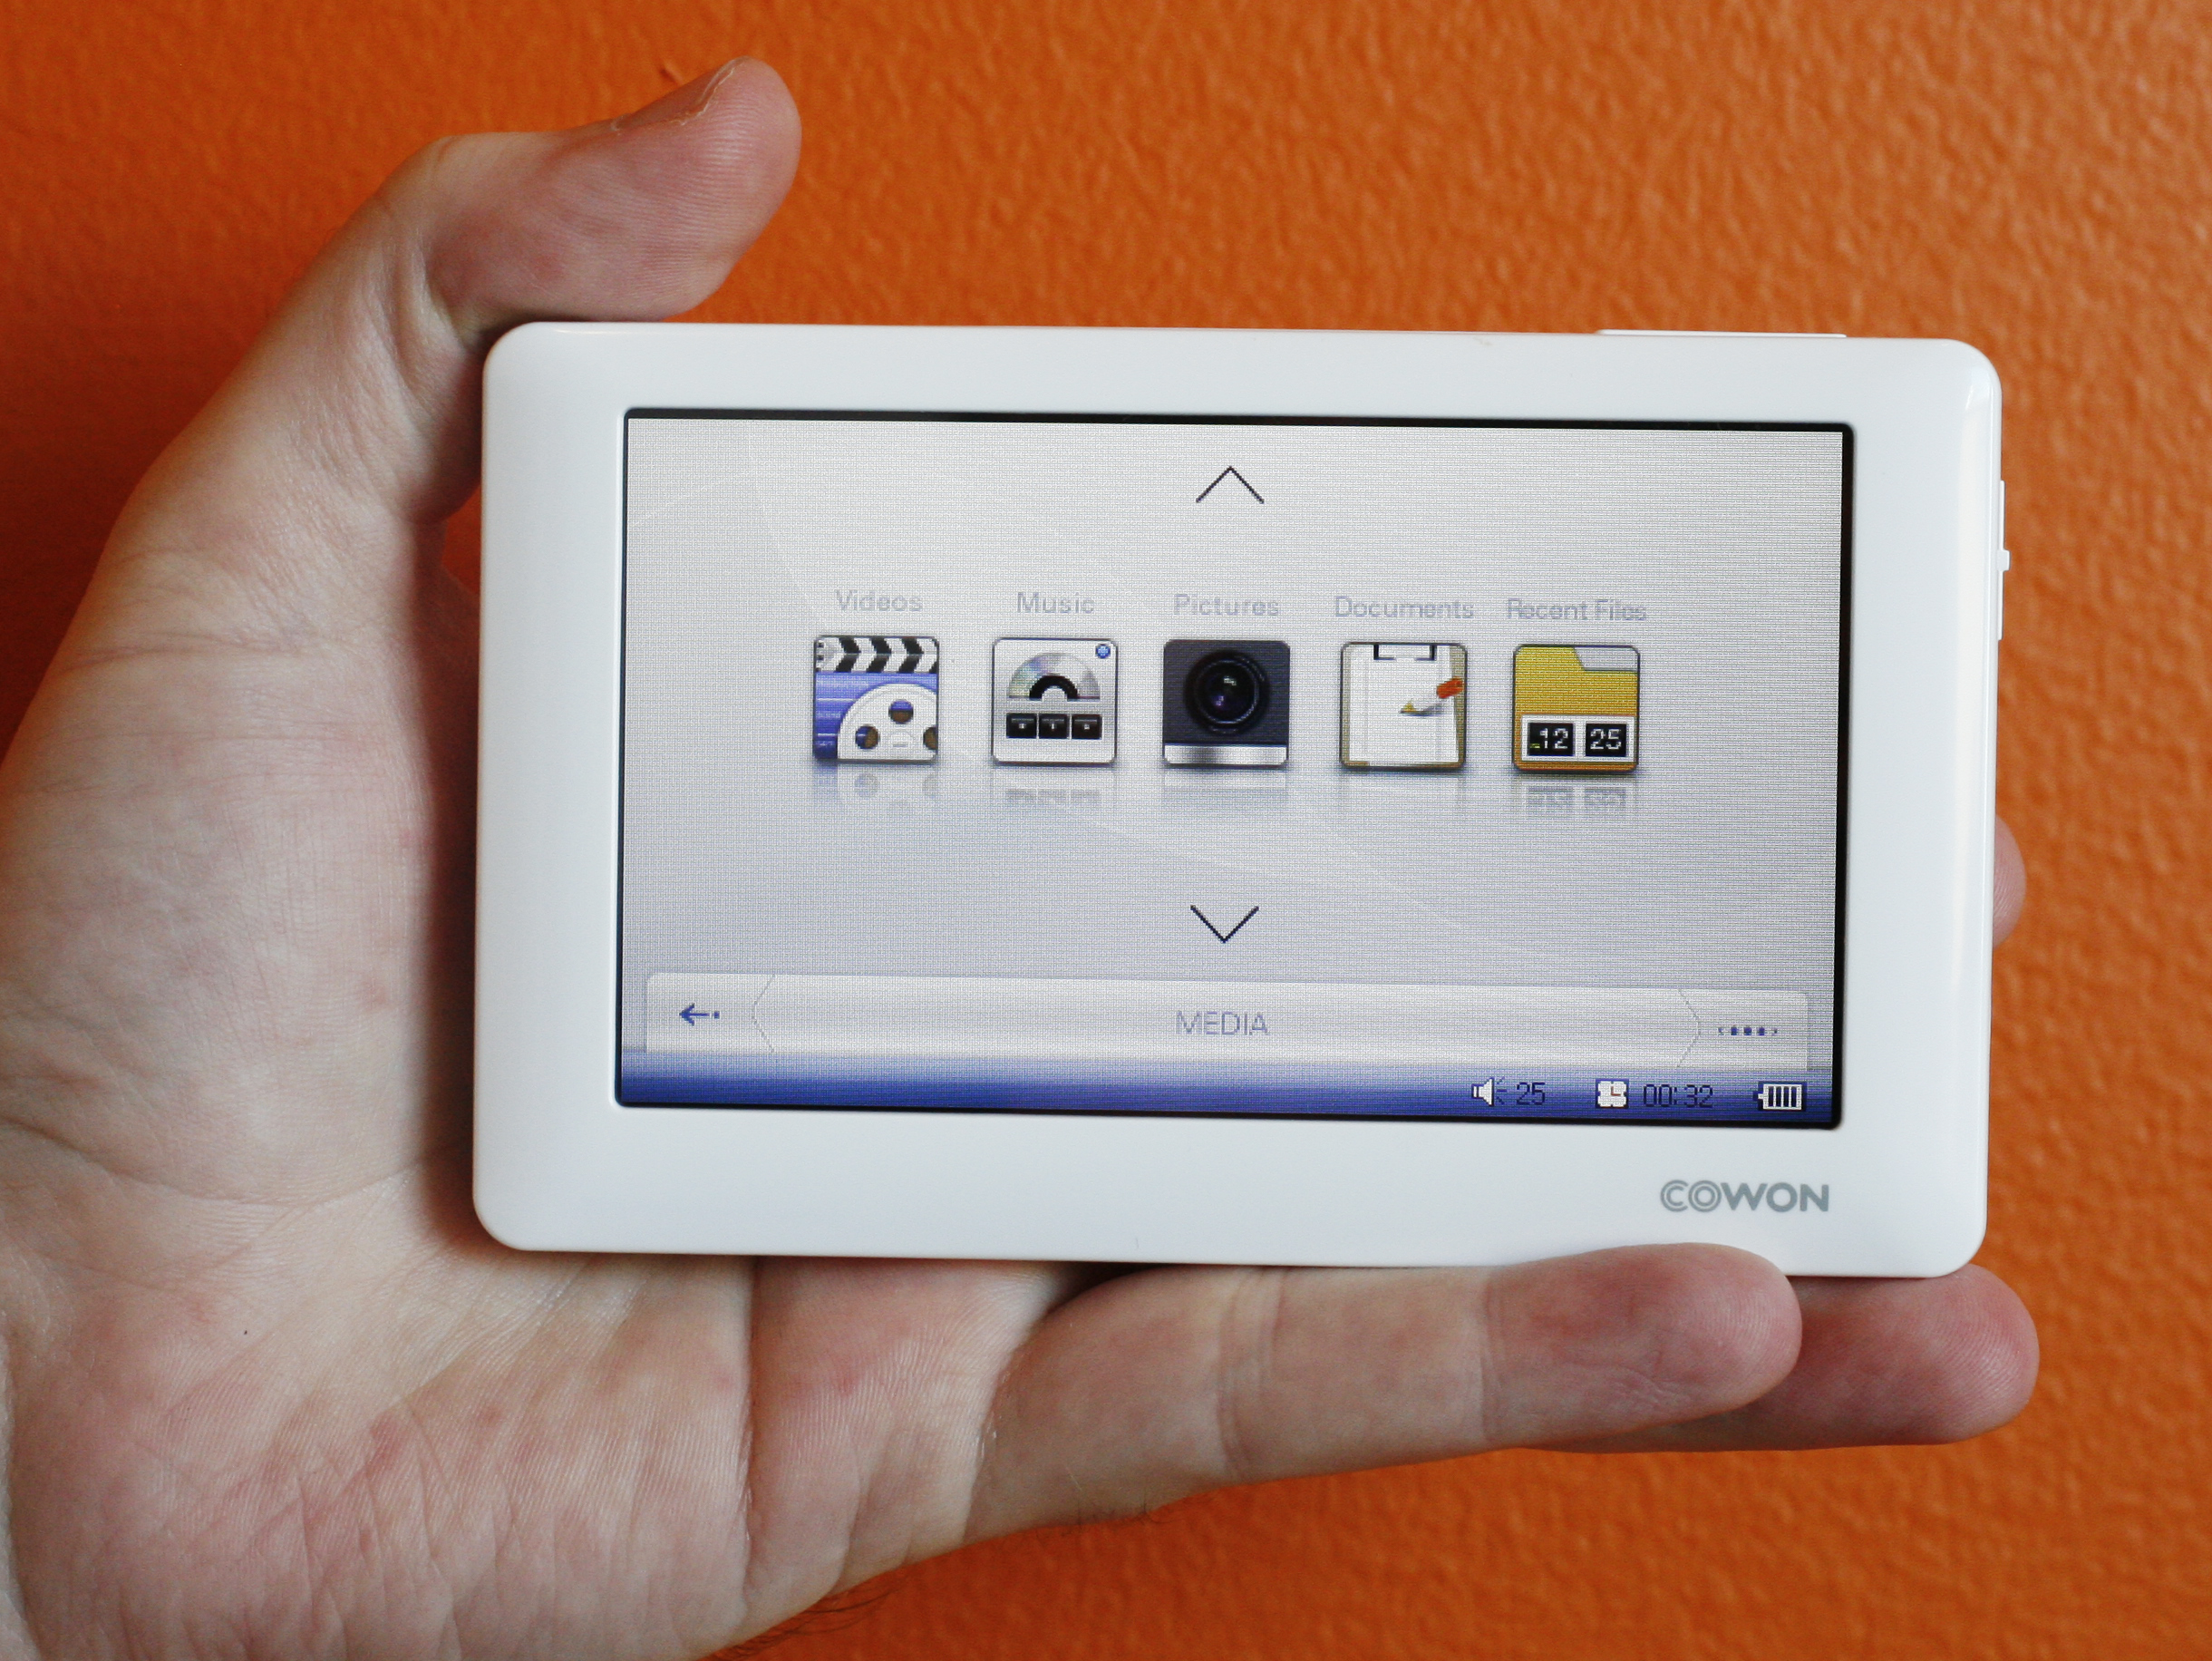 Photo of the Cowon O2 video player.